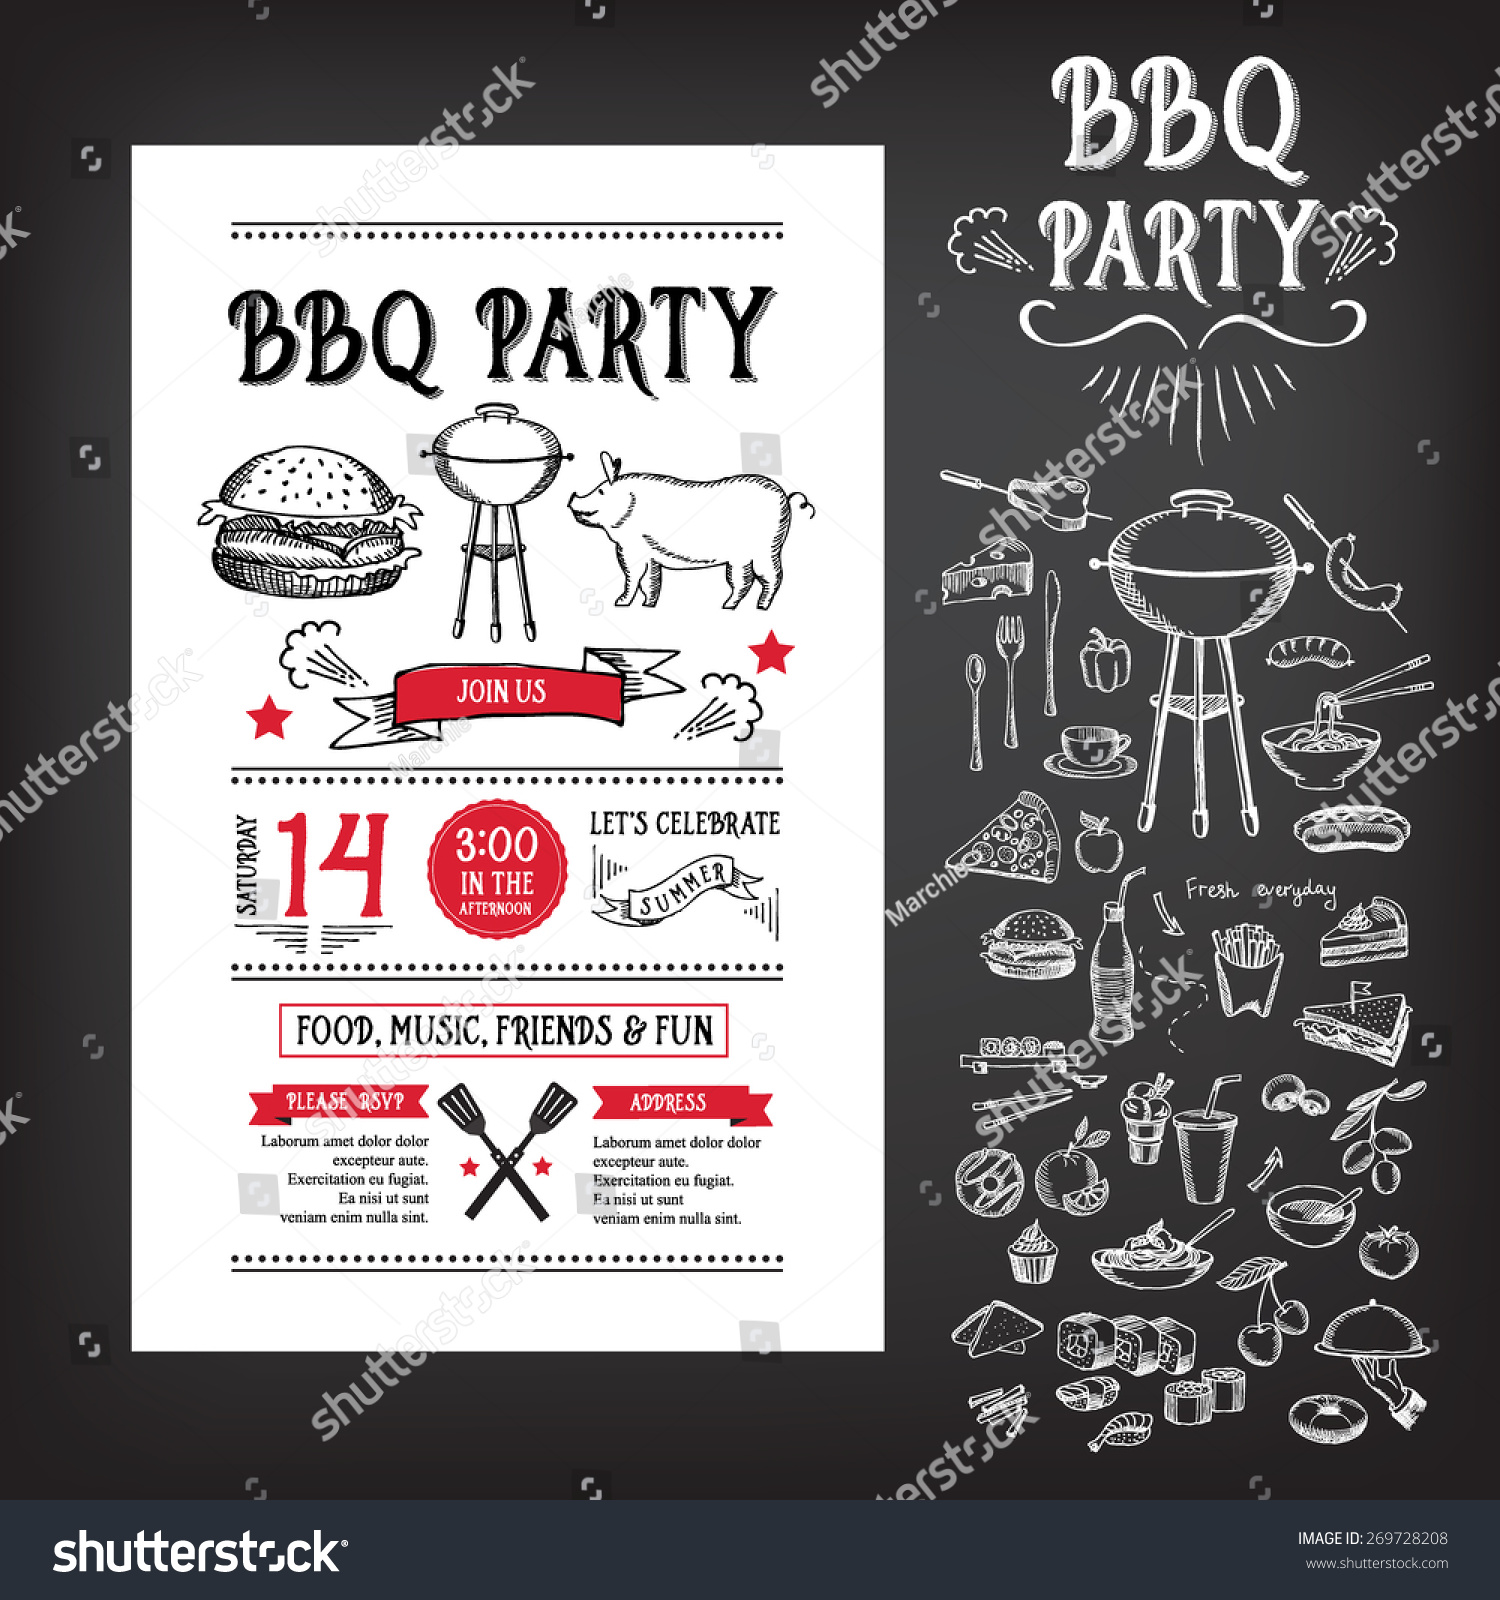 barbecue party invitation bbq template menu stock vector 269728208 shutterstock. Black Bedroom Furniture Sets. Home Design Ideas